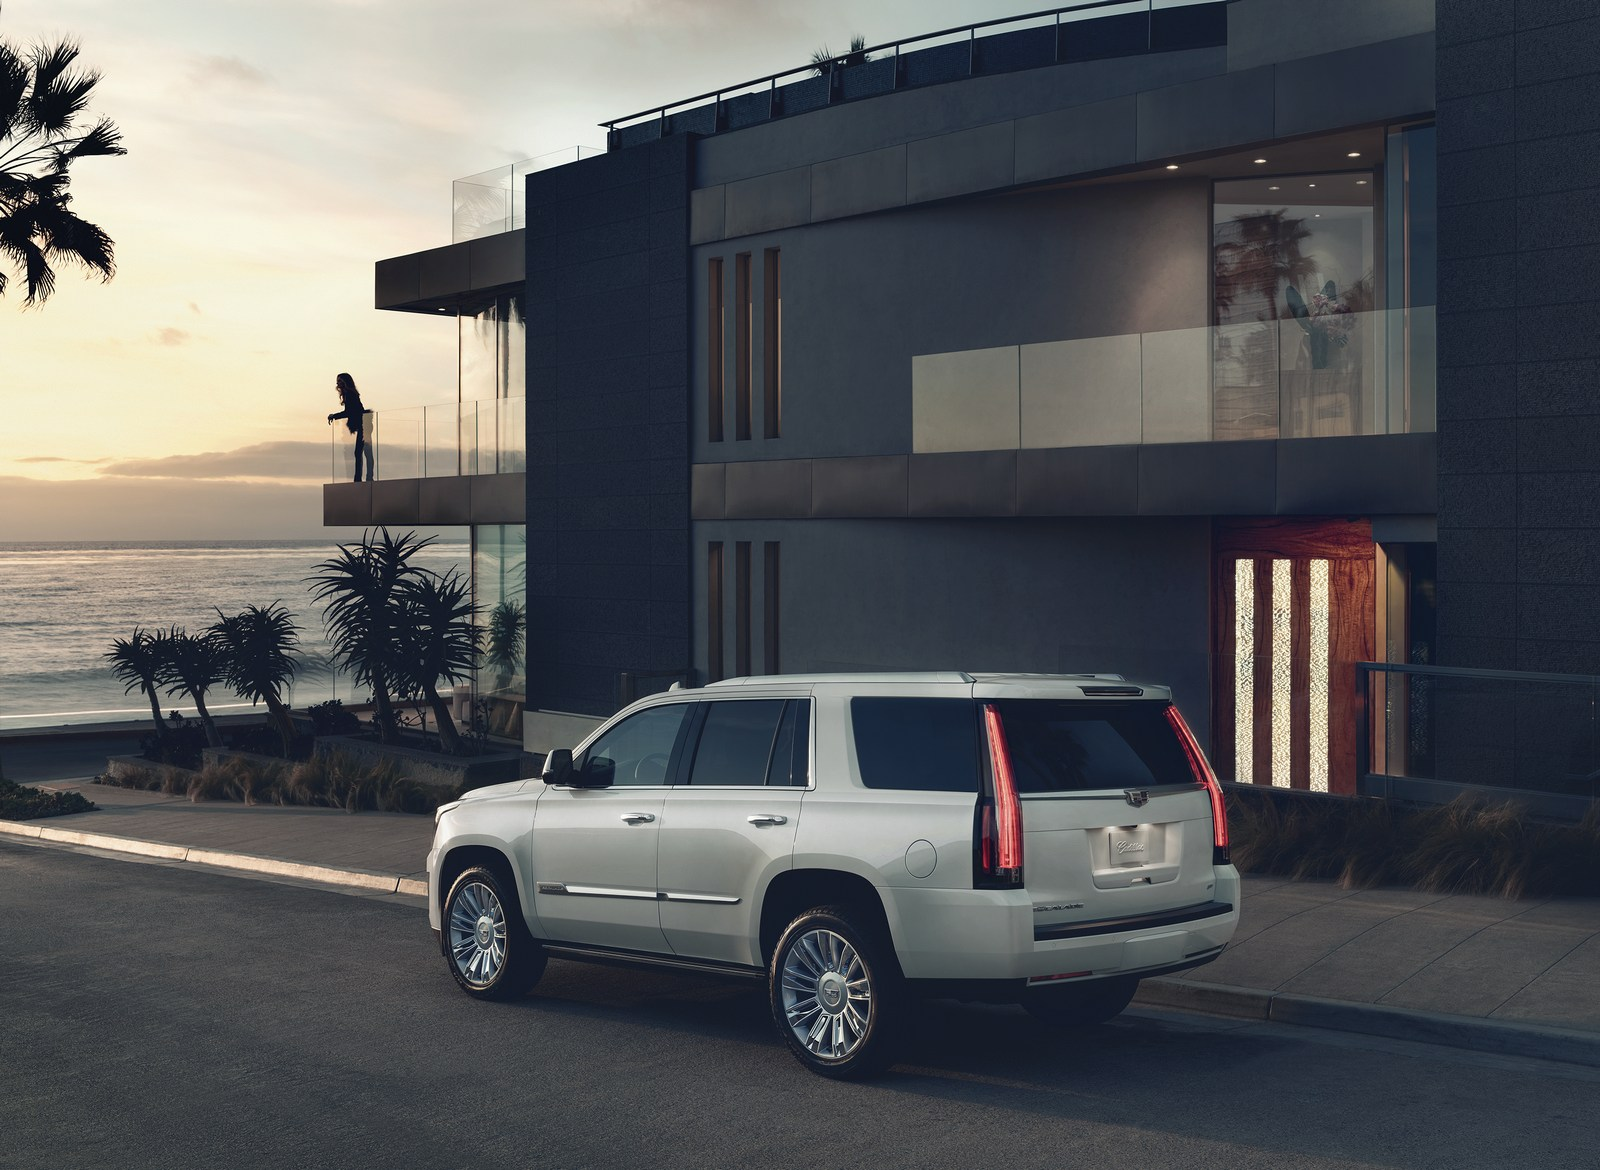 2020 Cadillac Escalade To Have An Independent Rear